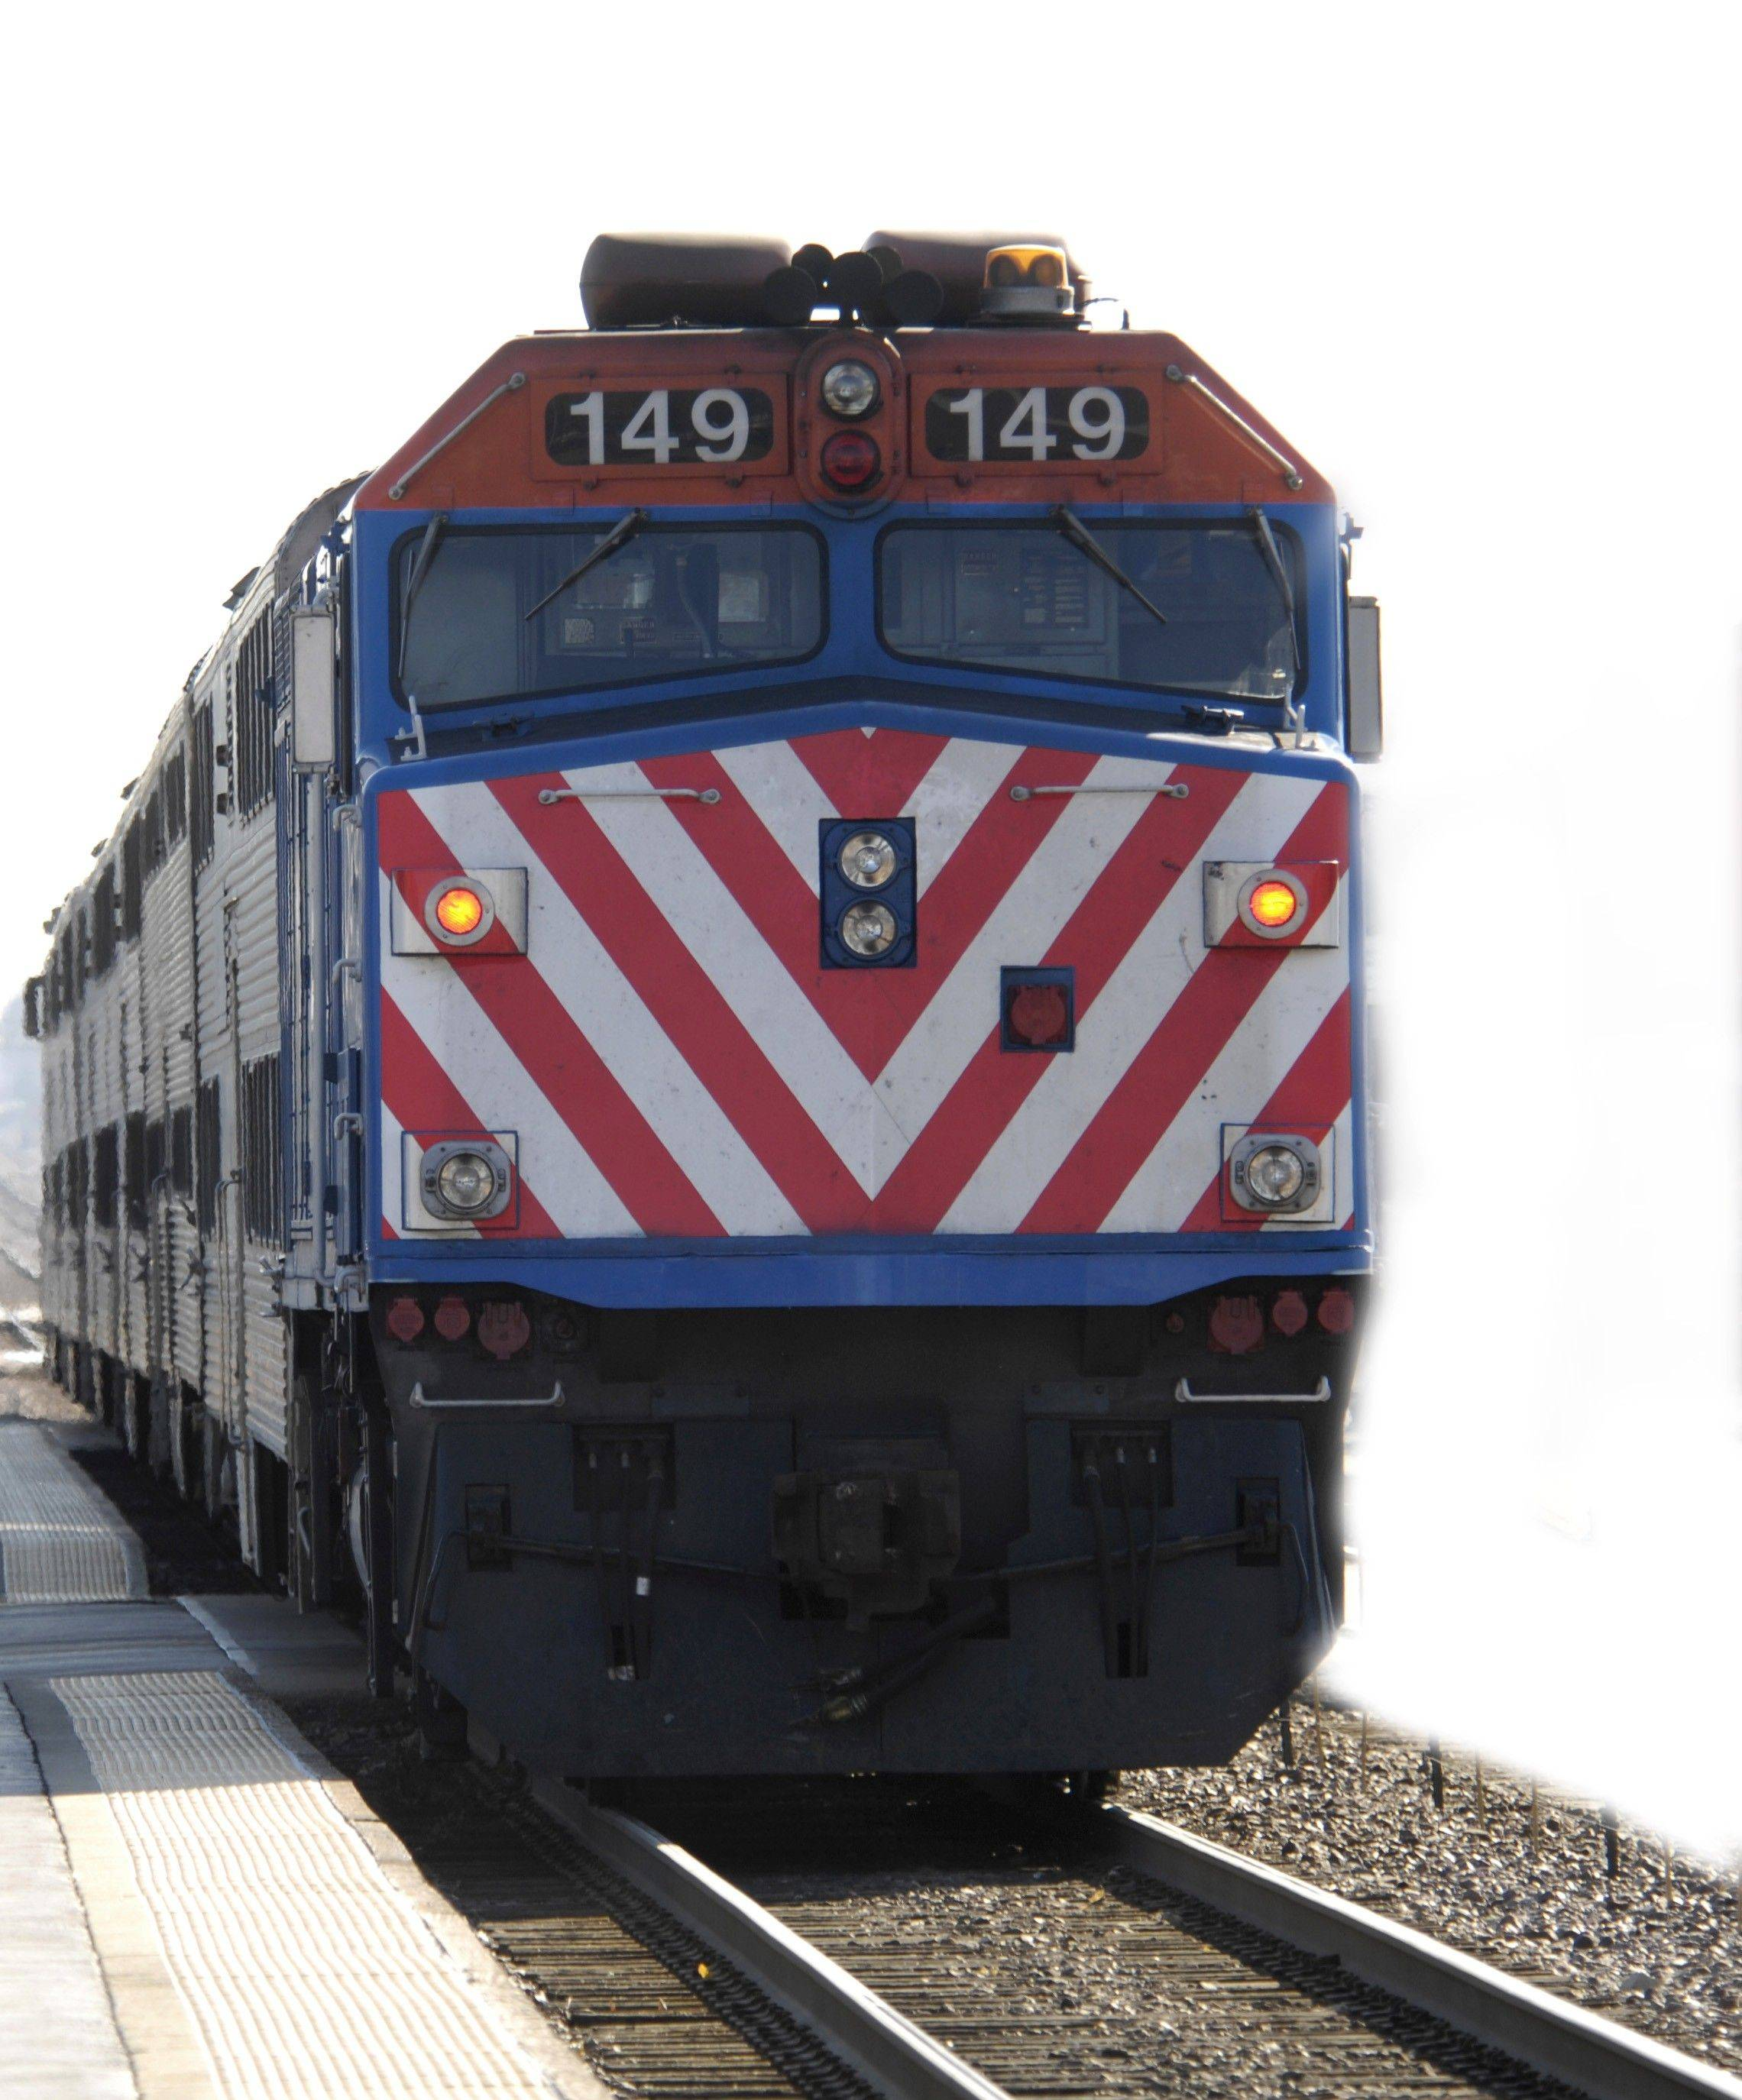 Metra riders get a break from fare hikes next year, but the rail agency threatens big service cuts unless the state increases funding.